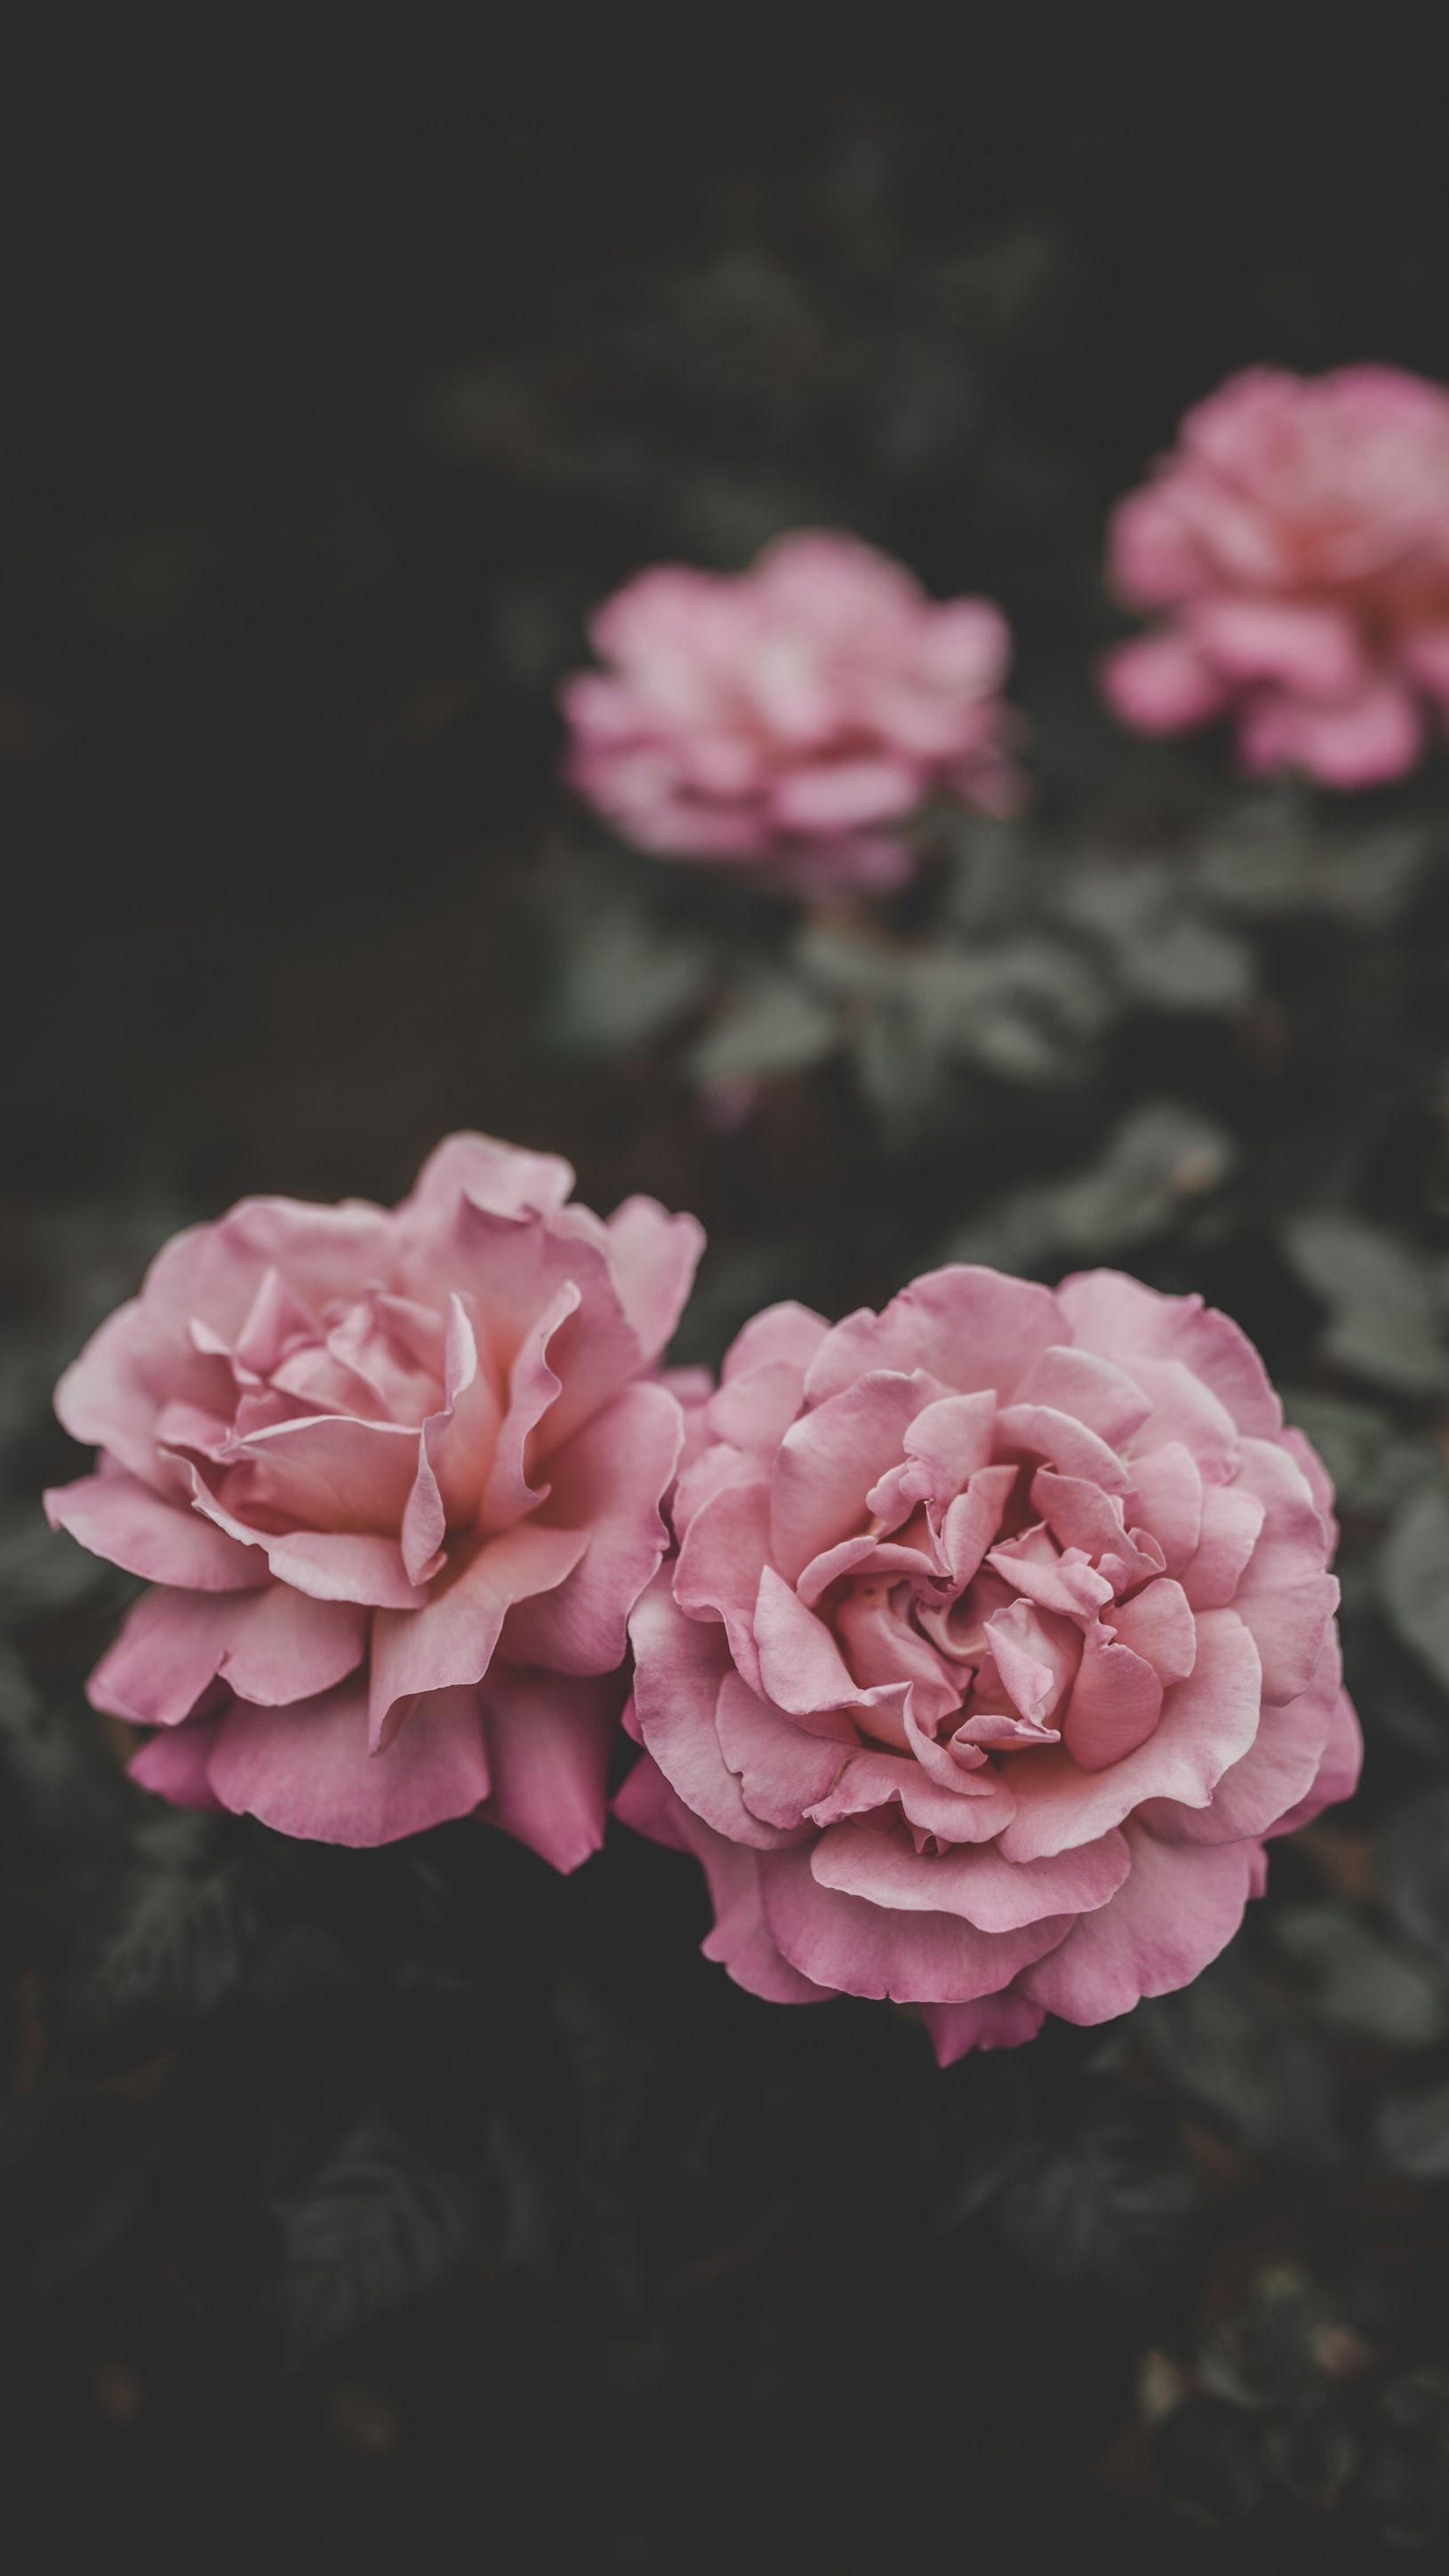 4K Flower Wallpapers